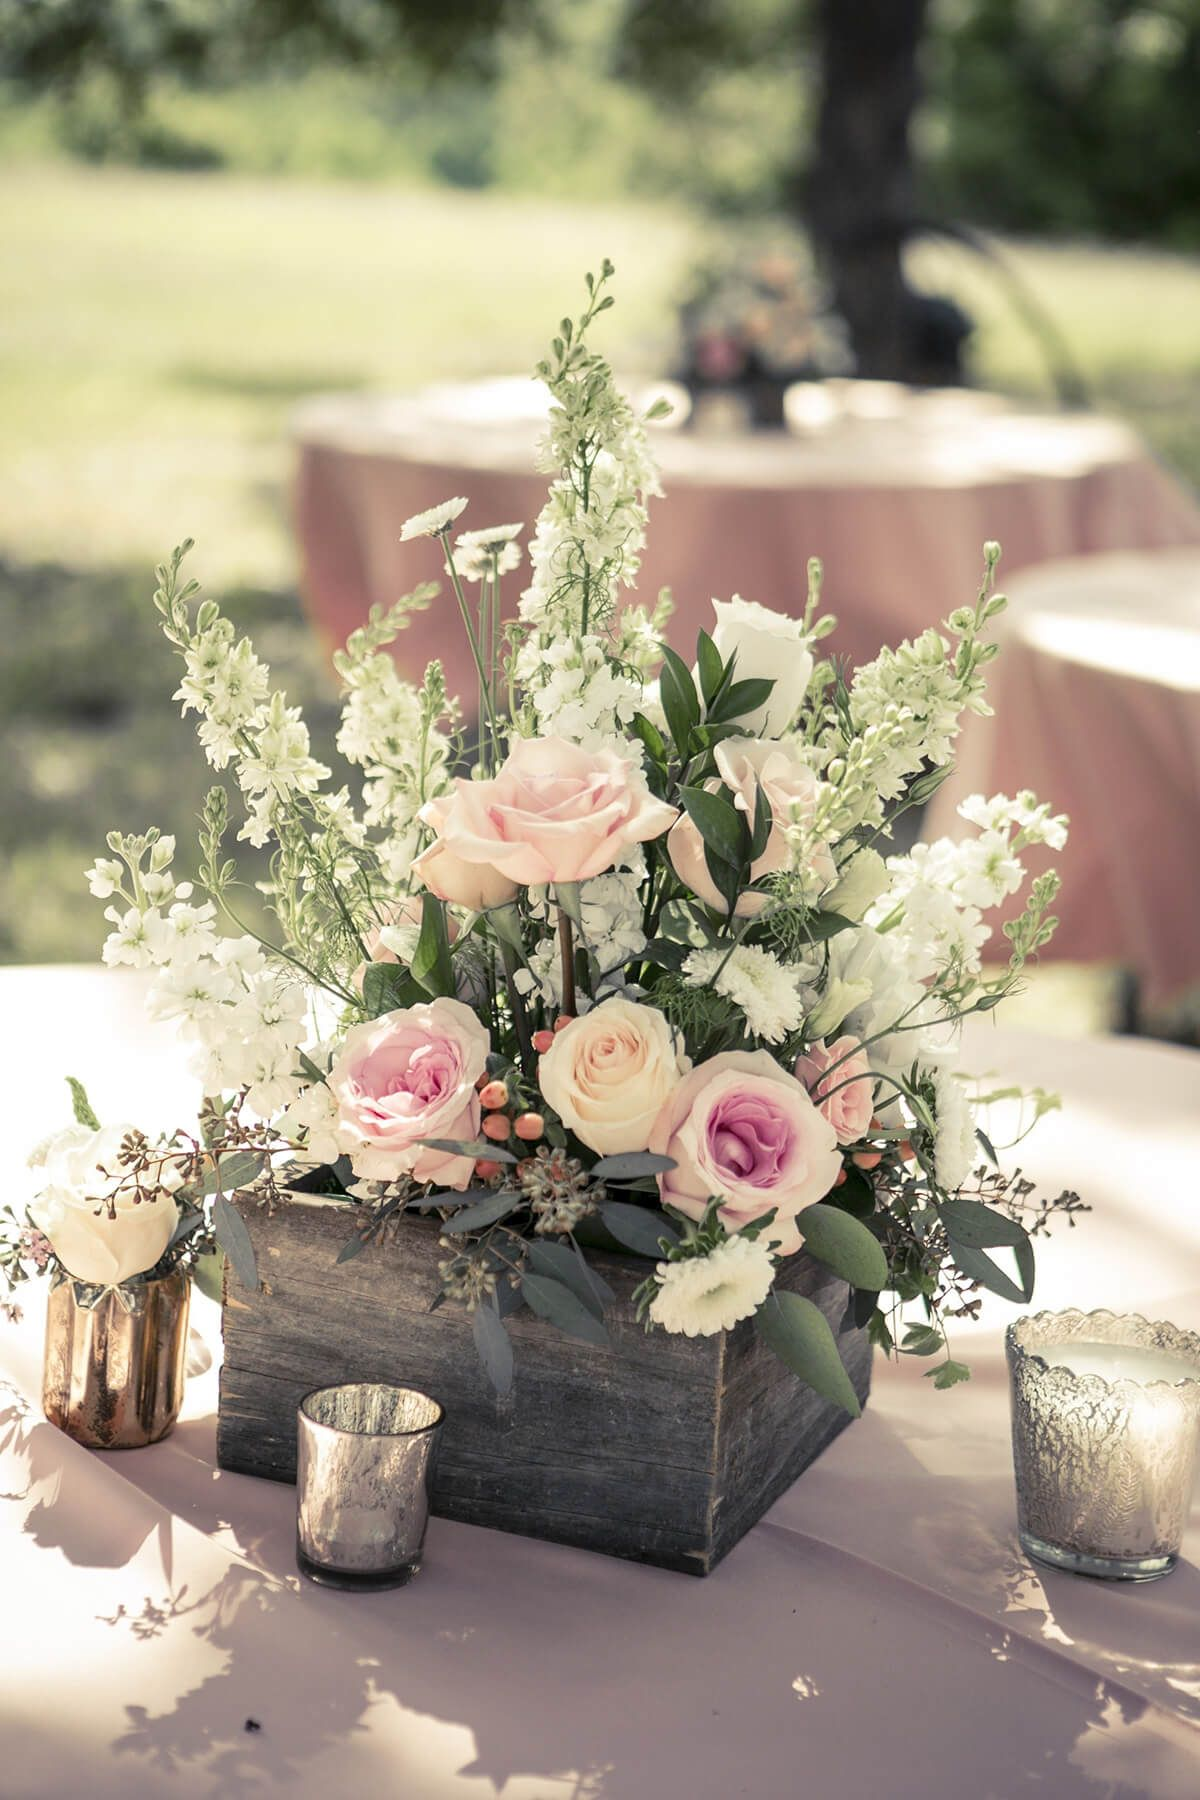 25 Simple and Cute Rustic Wooden Box Centerpiece Ideas to Liven Up Your  Decor